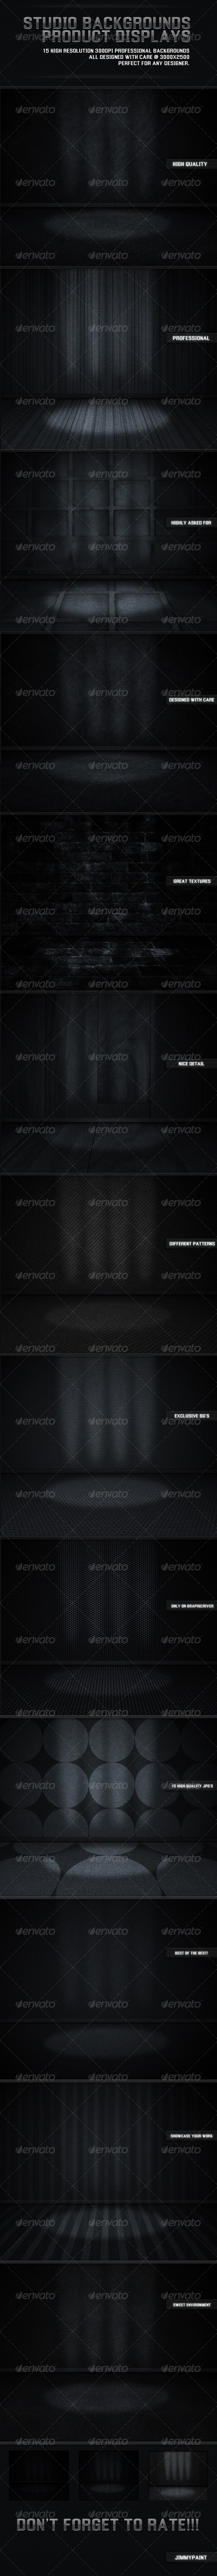 Studio Backgrounds Product Displays  - Miscellaneous Backgrounds